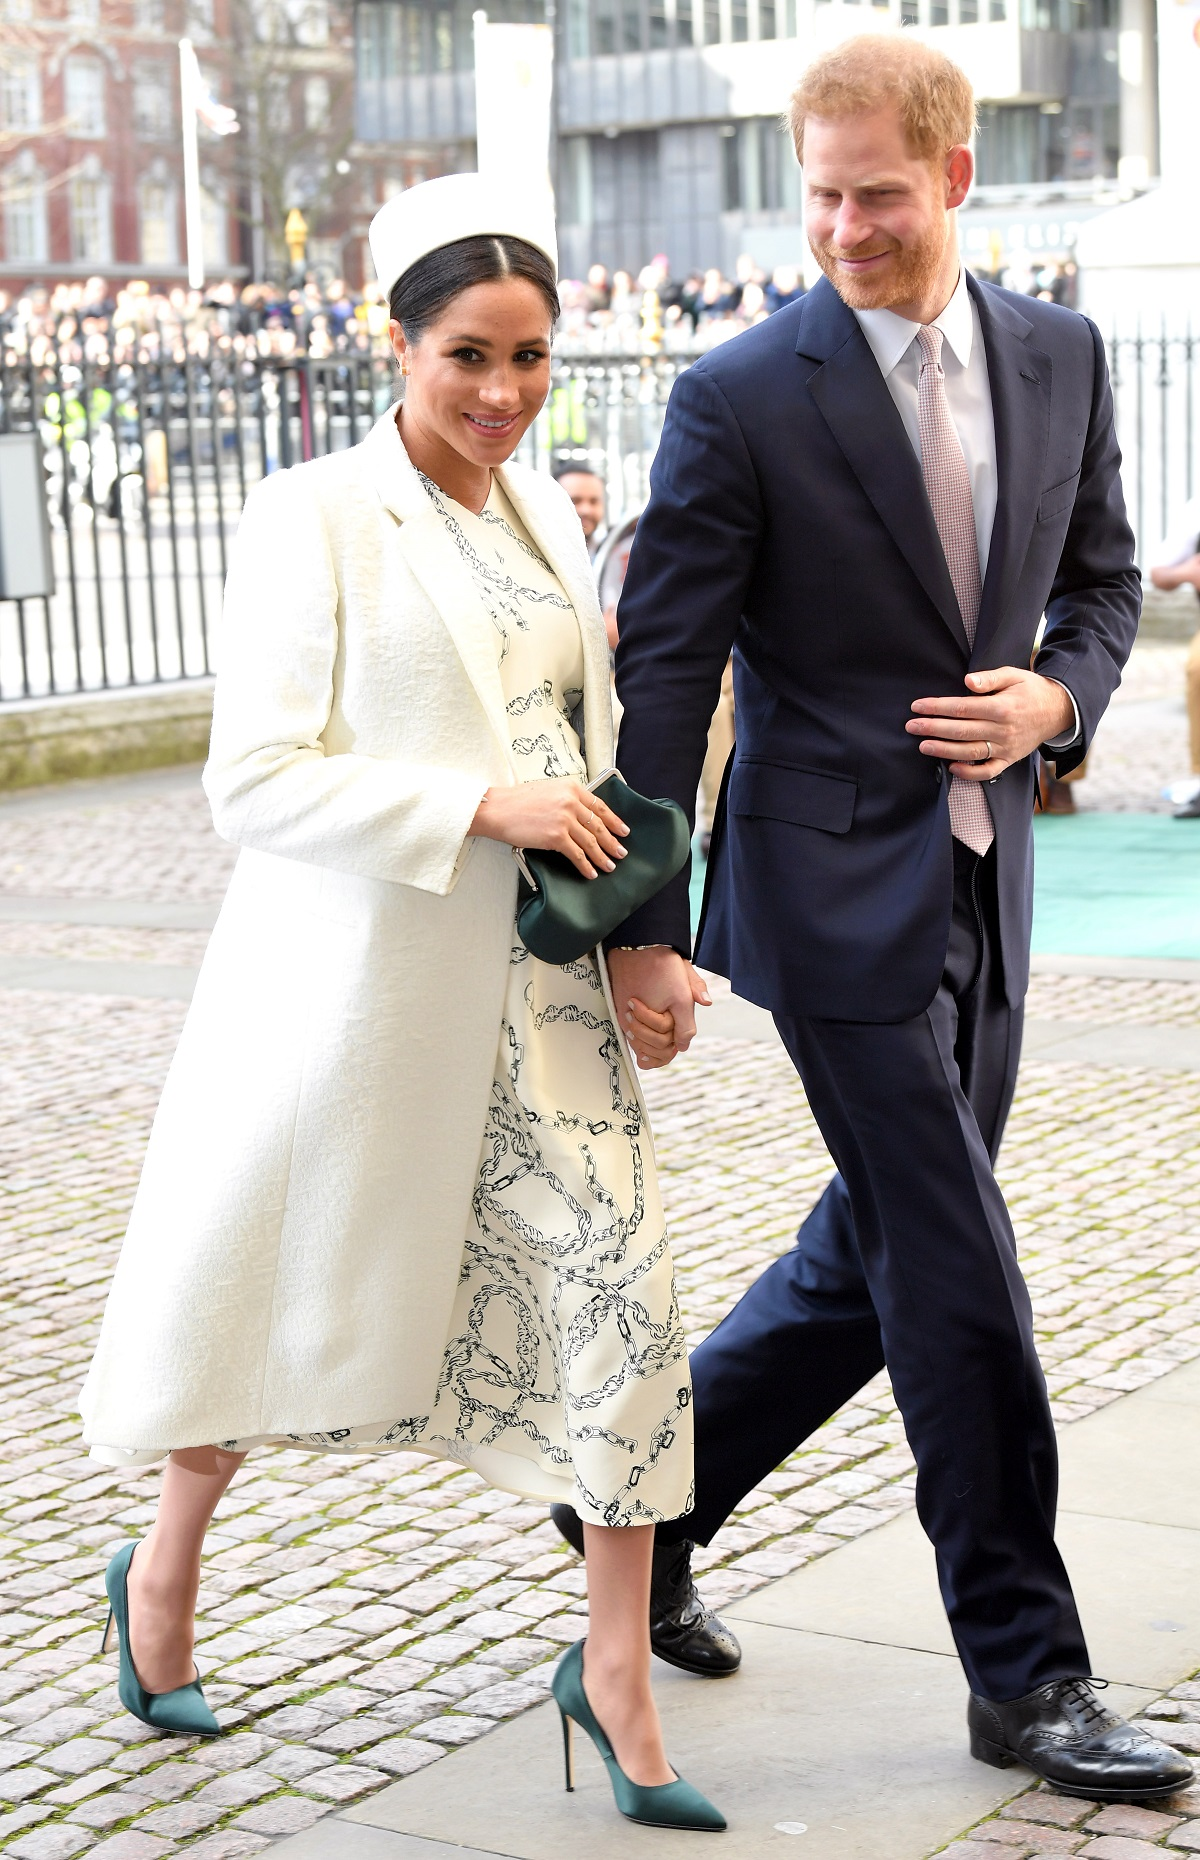 Meghan, Duchess of Sussex and Prince Harry, Duke of Sussex walking into the Commonwealth Day service at Westminster Abbey on March 11, 2019 in London, England.